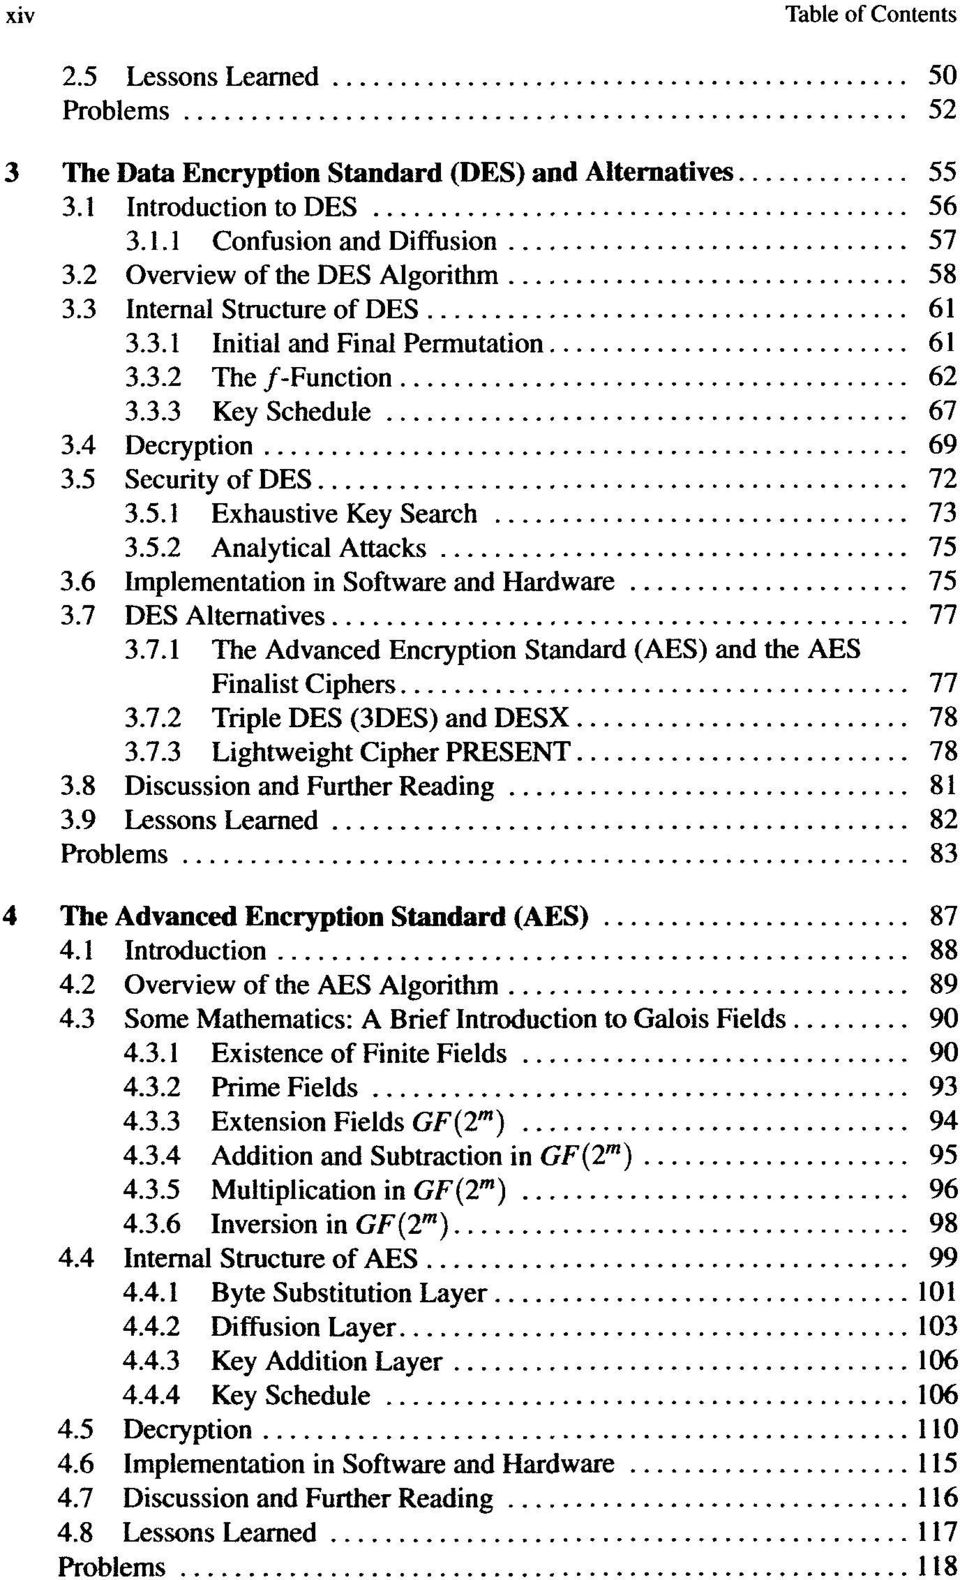 6 Implementation in Software and Hardware 75 3.7 DES Alternatives 77 3.7.1 The Advanced Encryption Standard (AES) and the AES Finalist Ciphers 77 3.7.2 Triple DES (3DES) and DESX 78 3.7.3 Lightweight Cipher PRESENT 78 3.